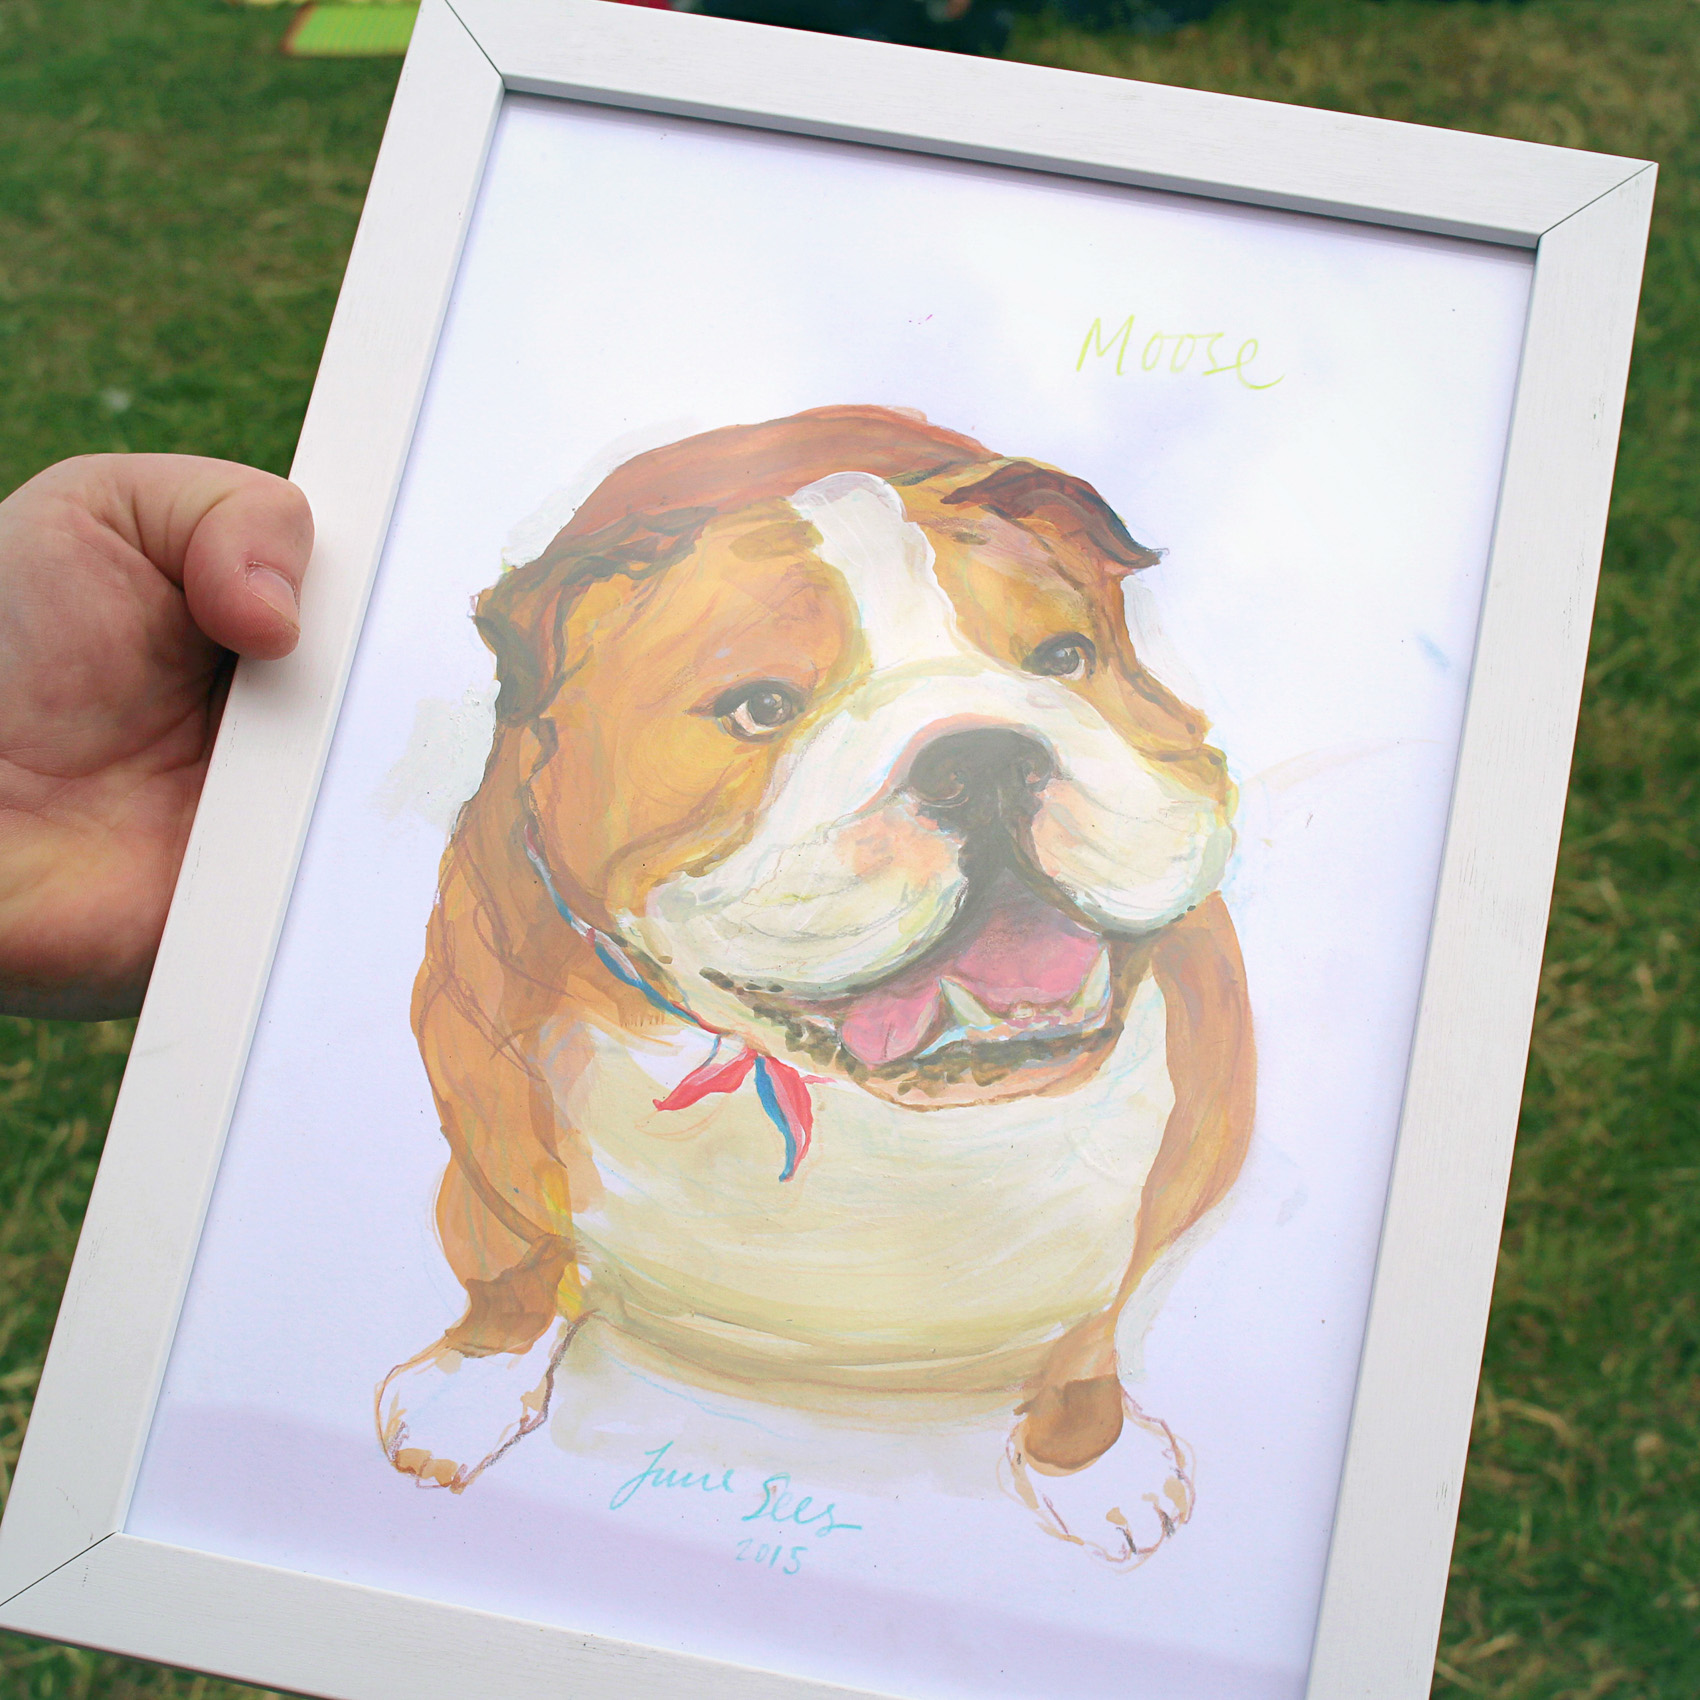 I painted a portrait of an English Bulldog. In the Rain…